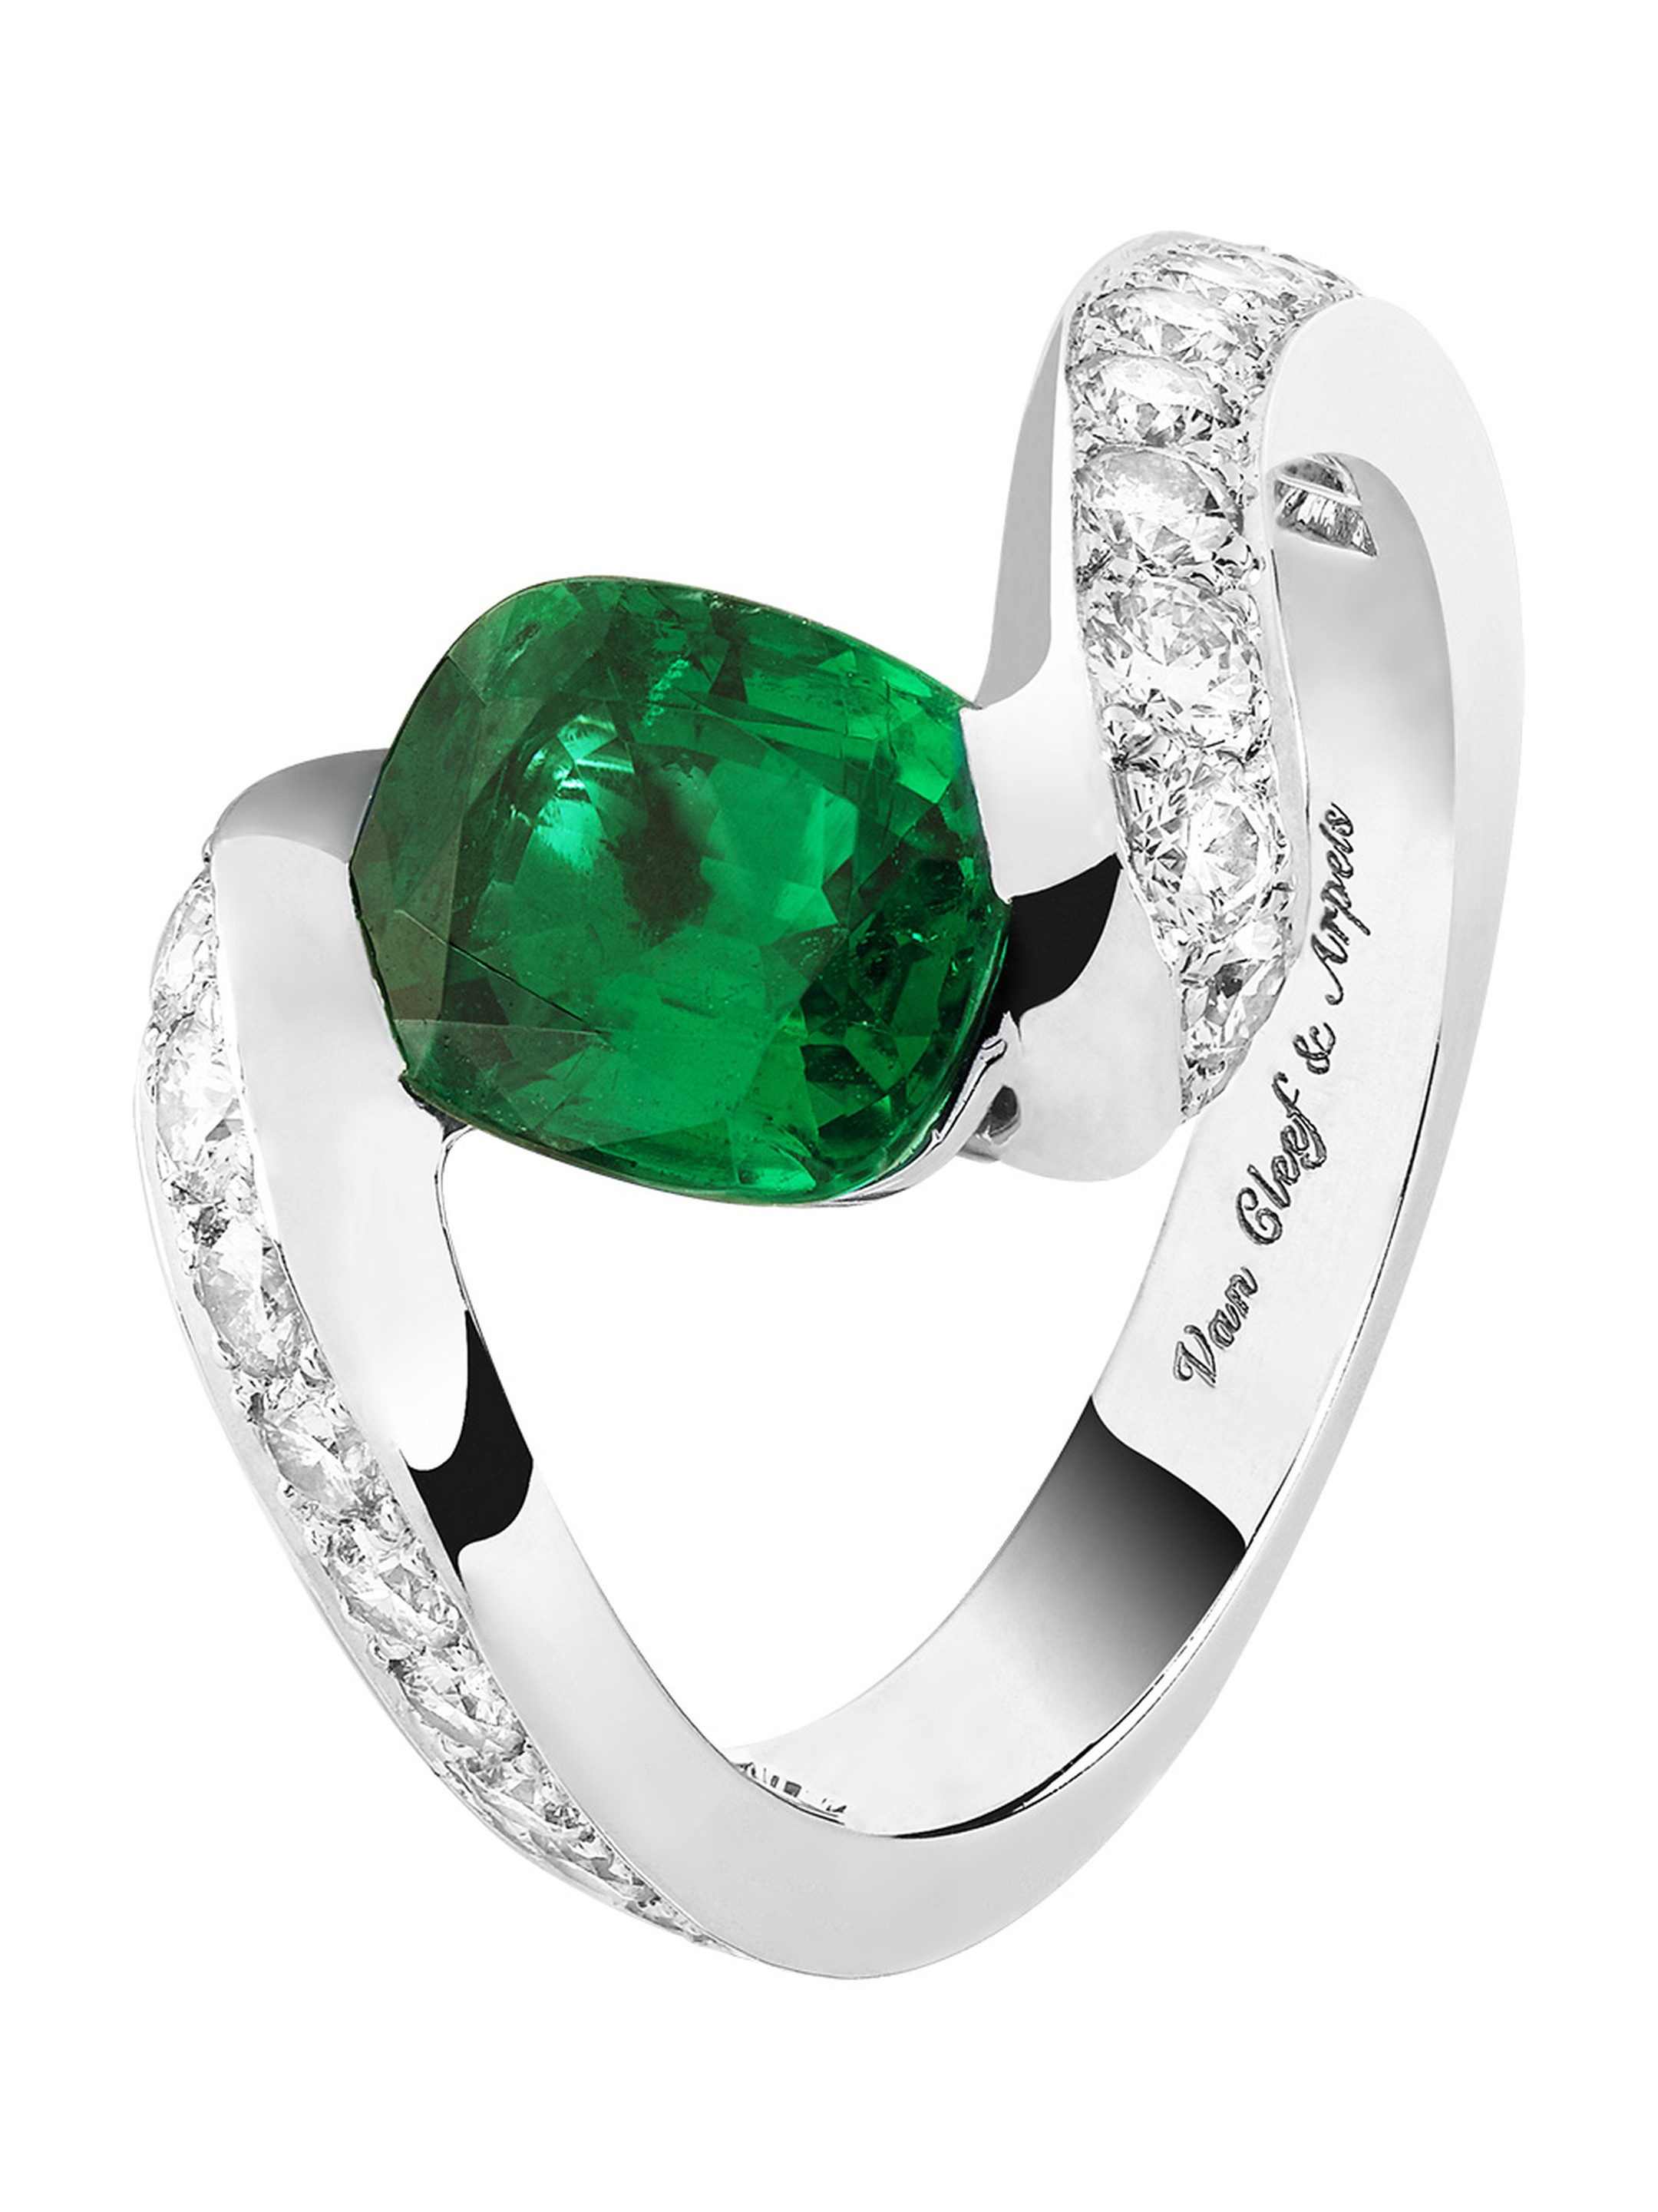 Van Cleef & Arpels Hirondelle Solitaire in platinum, set with round diamonds and a 1.79ct cushion-cut emerald.